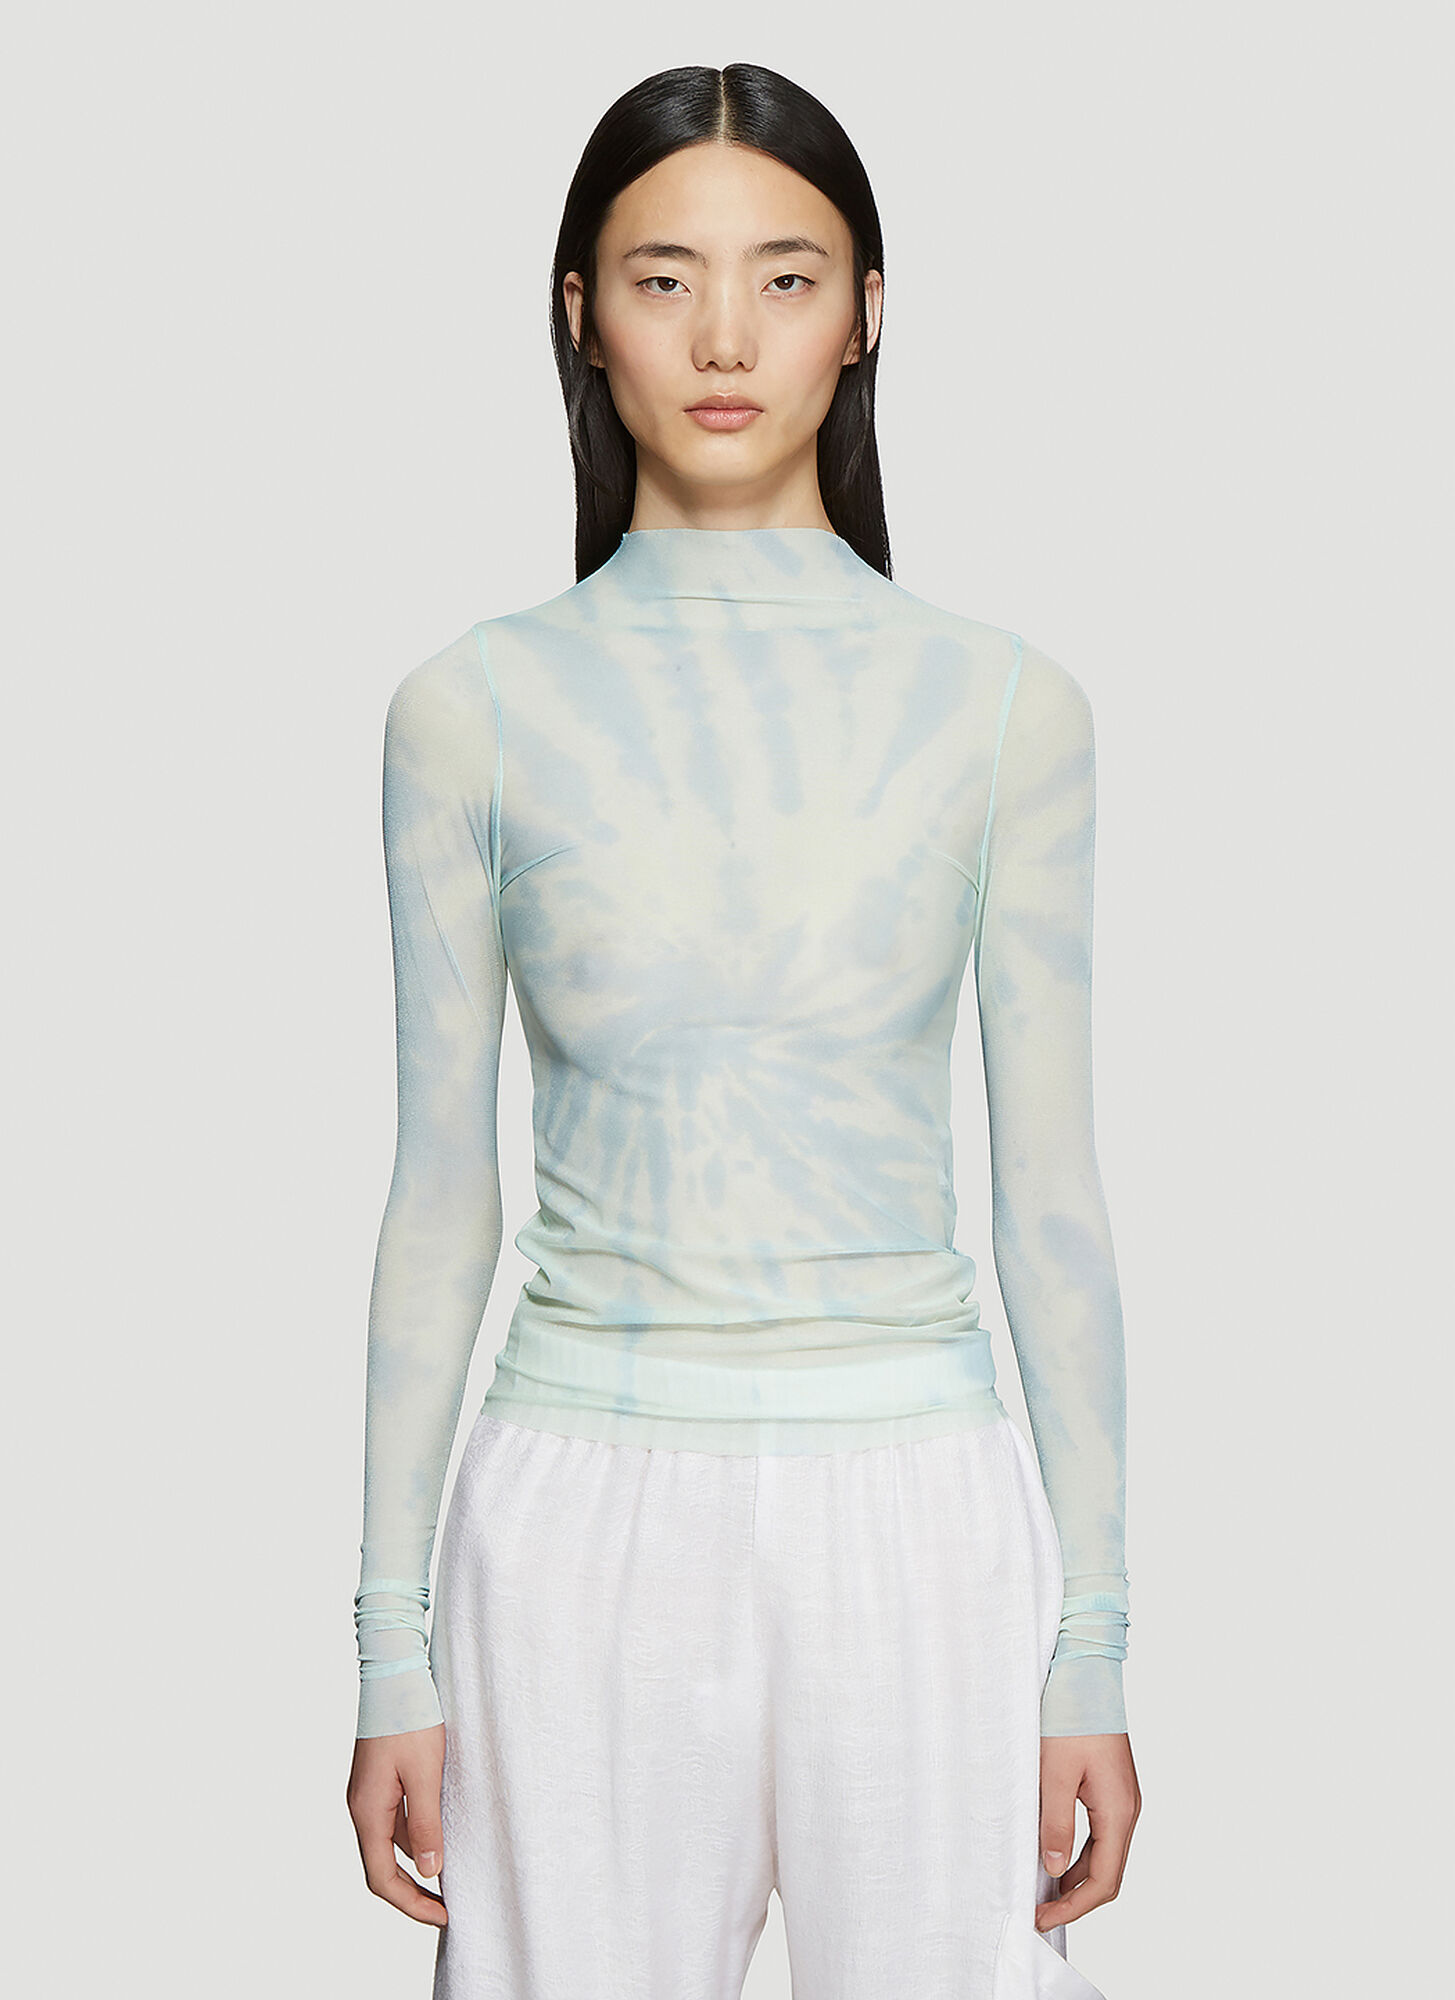 Collina Strada Cardio Nova Tie-Dye Long Sleeve Top in Blu